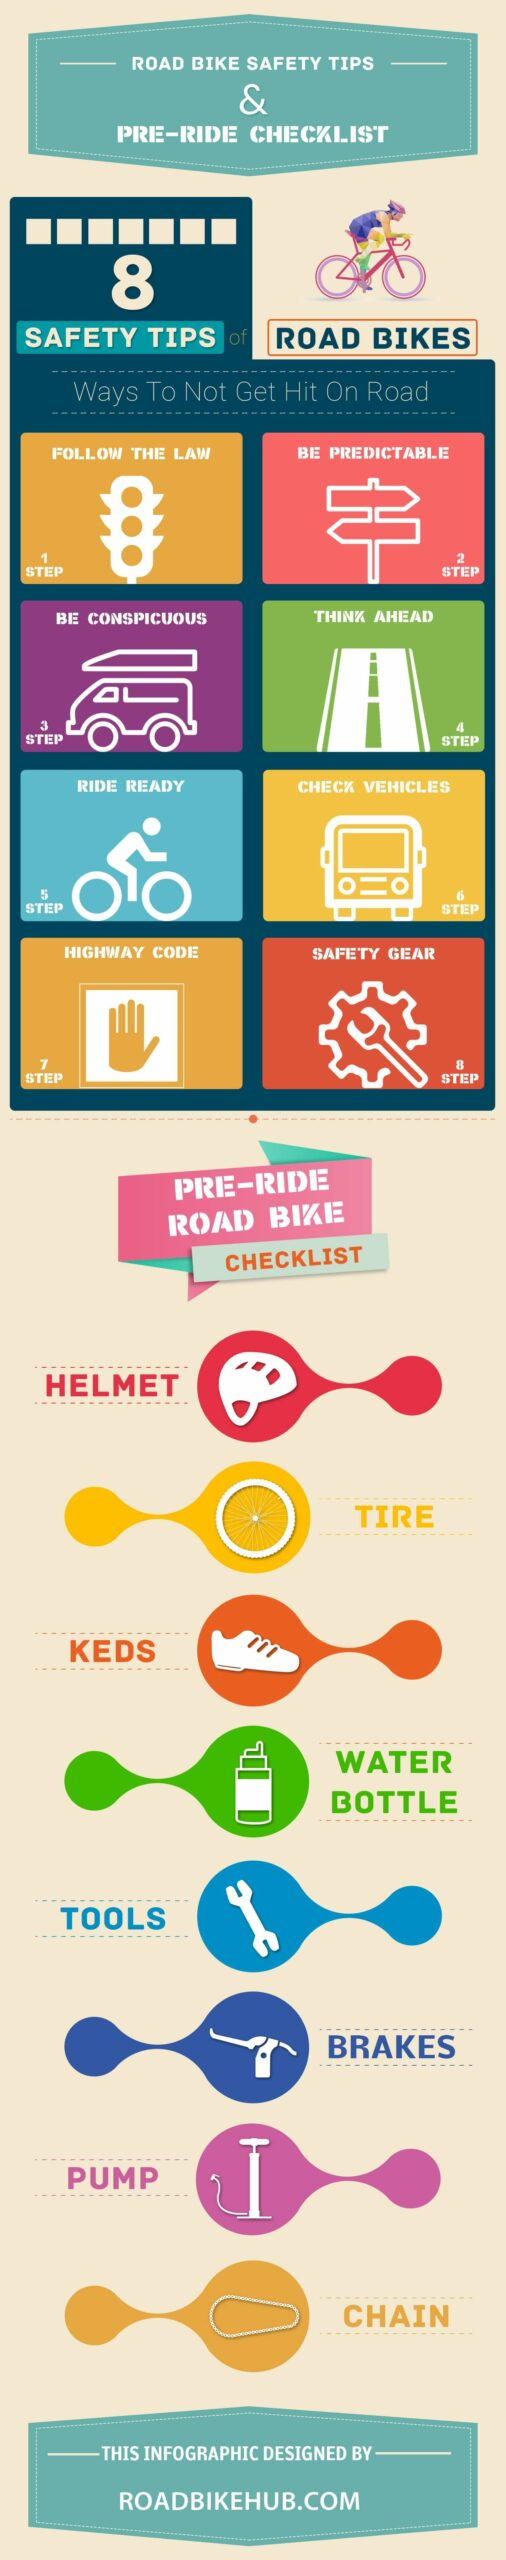 Infographic Road Bike Safety Tips and Pre-Ride Checklist